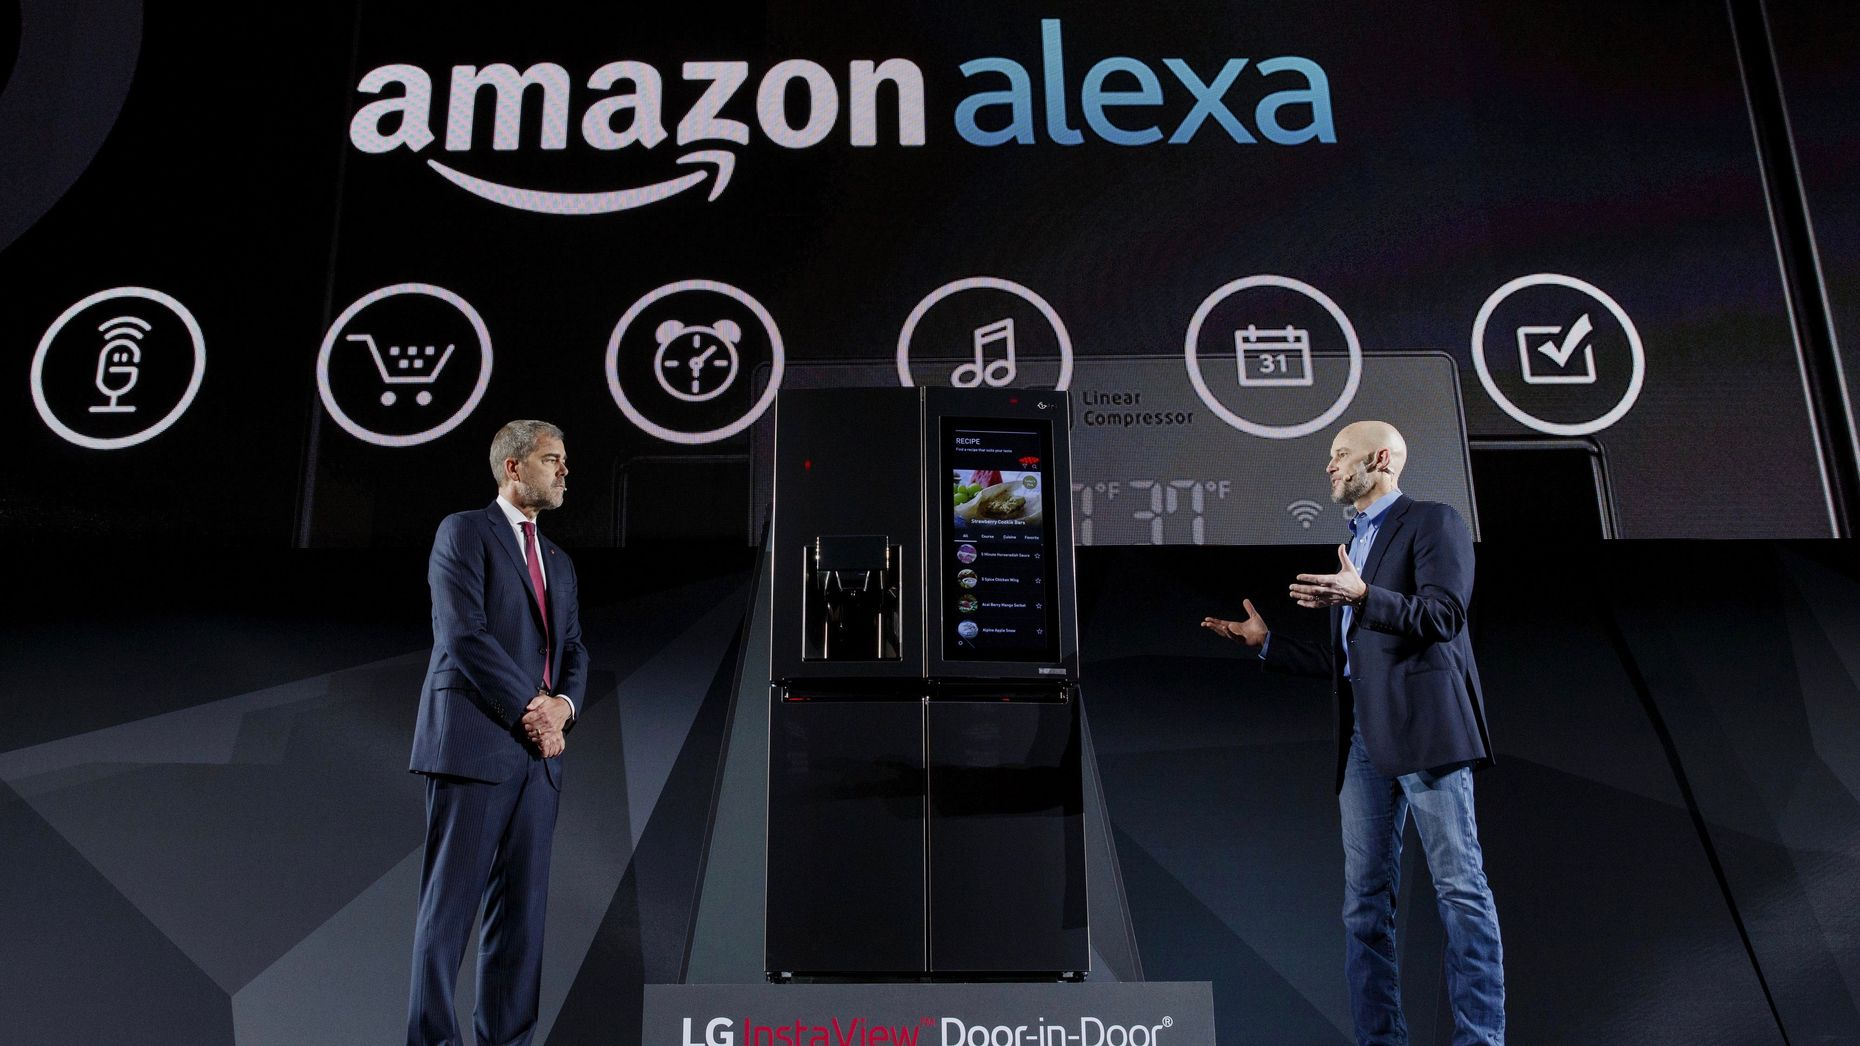 David VanderWaal, vice president of marketing for LG Electronics USA and Michael George, vice president of Alexa, Echo, and Appstore at Amazon, discussing an LG-Amazon Alex partnership at CES this year. Photo by Bloomberg.